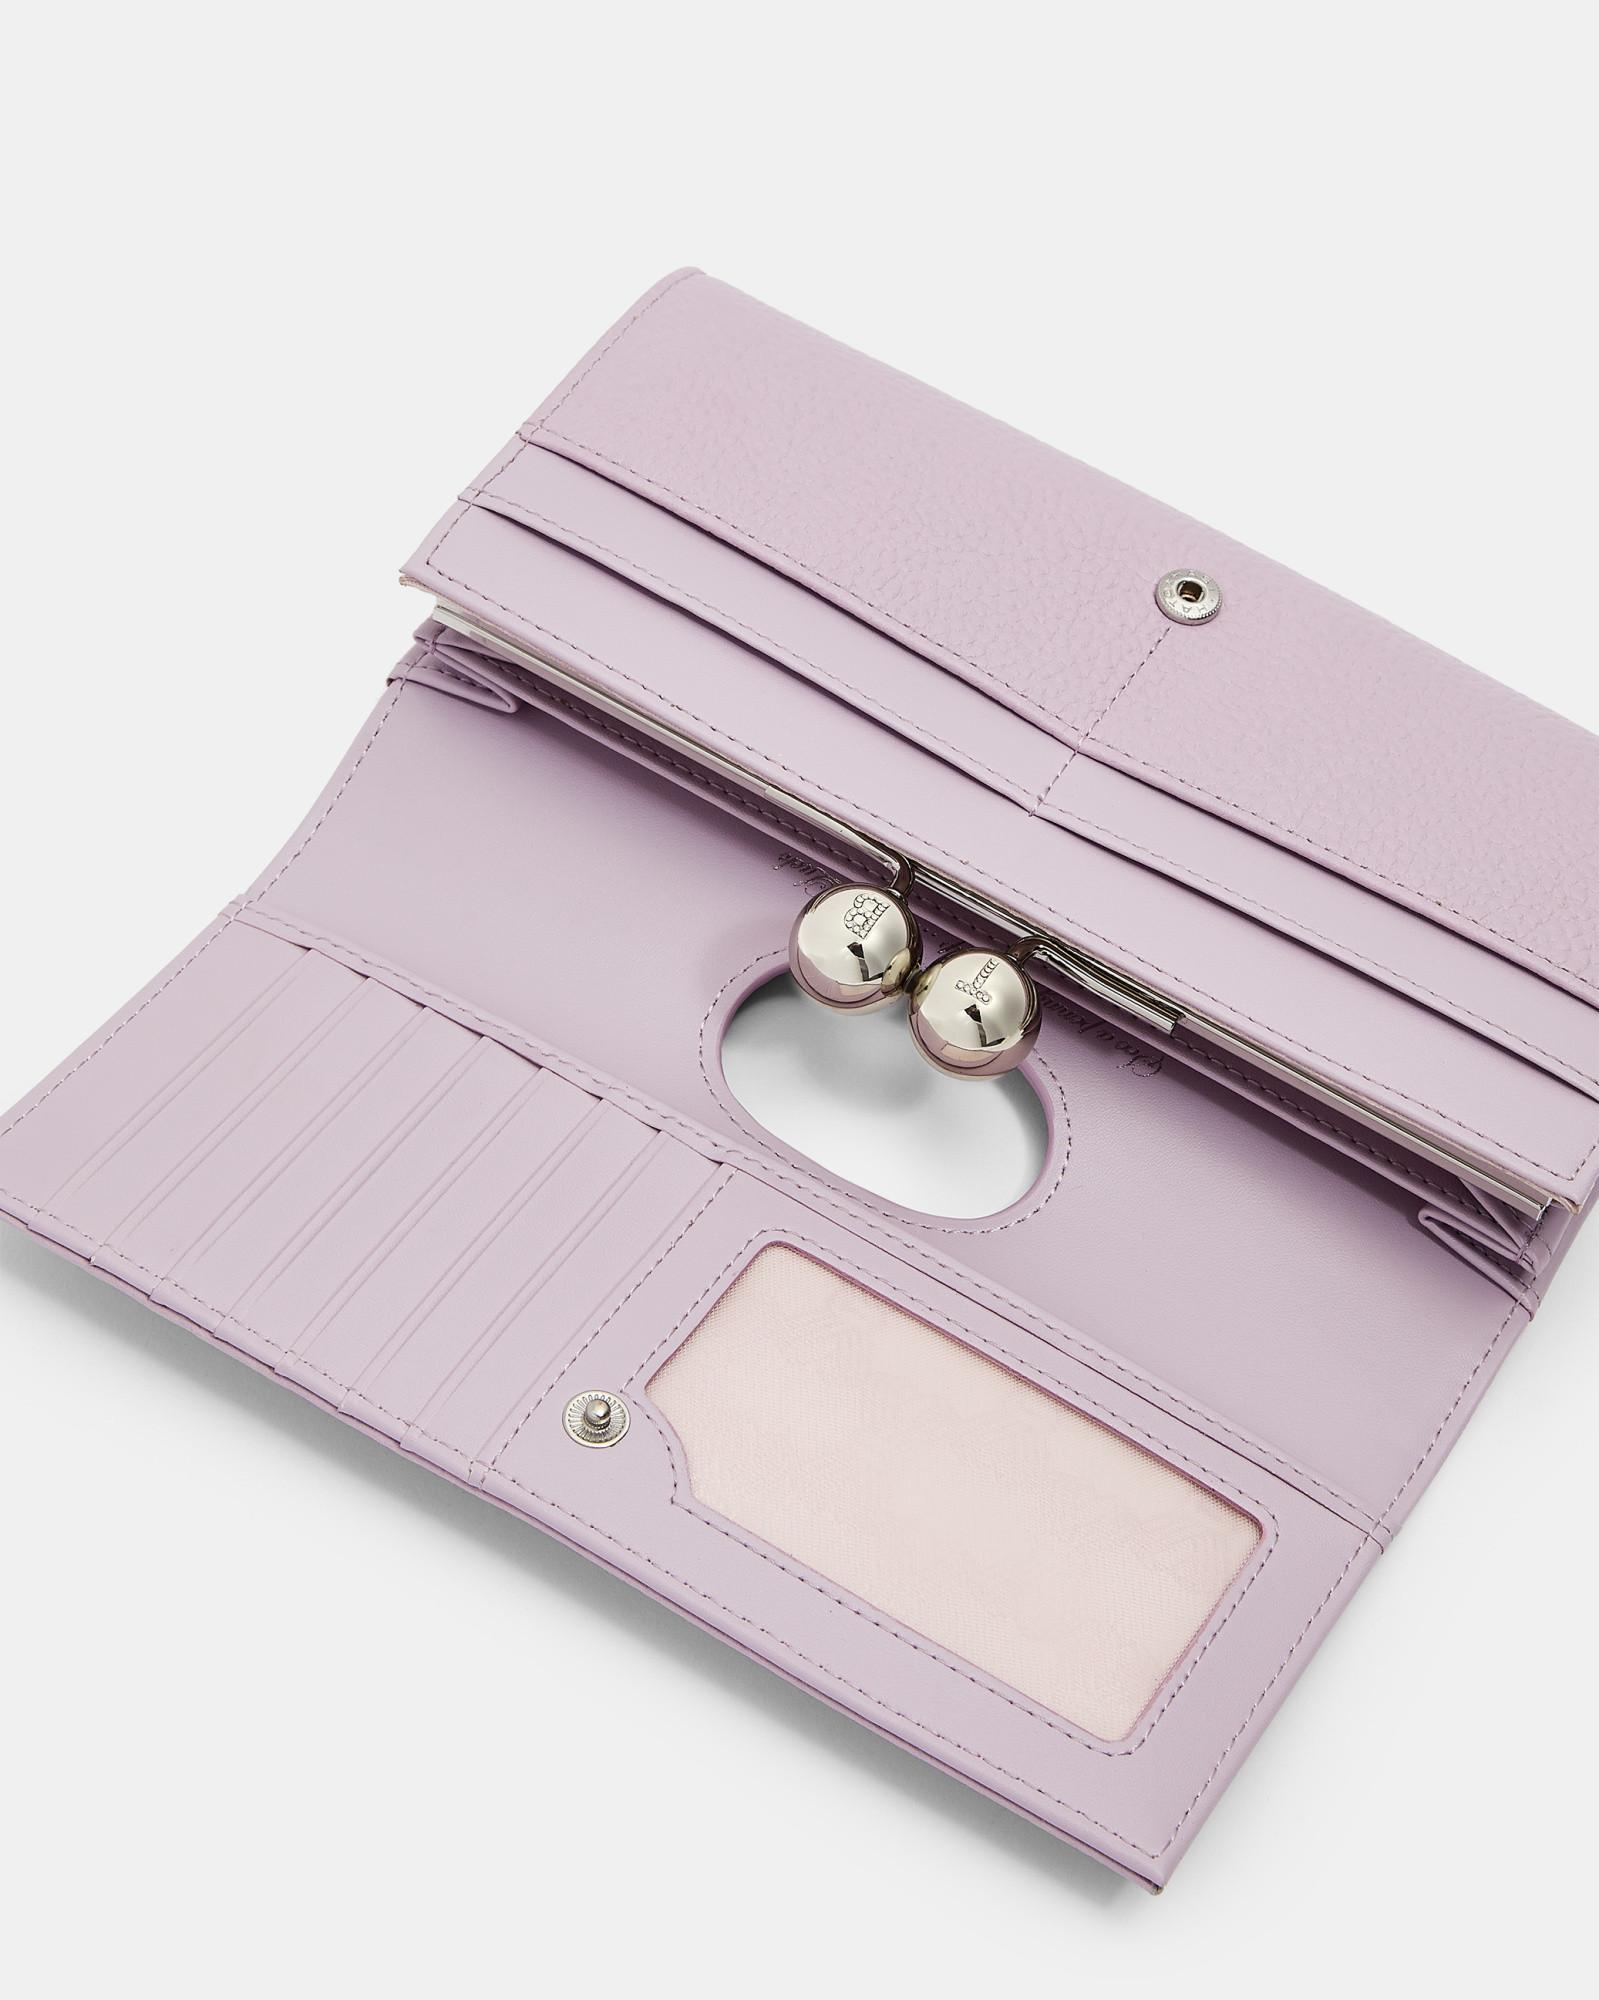 c5eeb3981 Lyst - Ted Baker Scripted Leather Bobble Matinee Purse in Purple